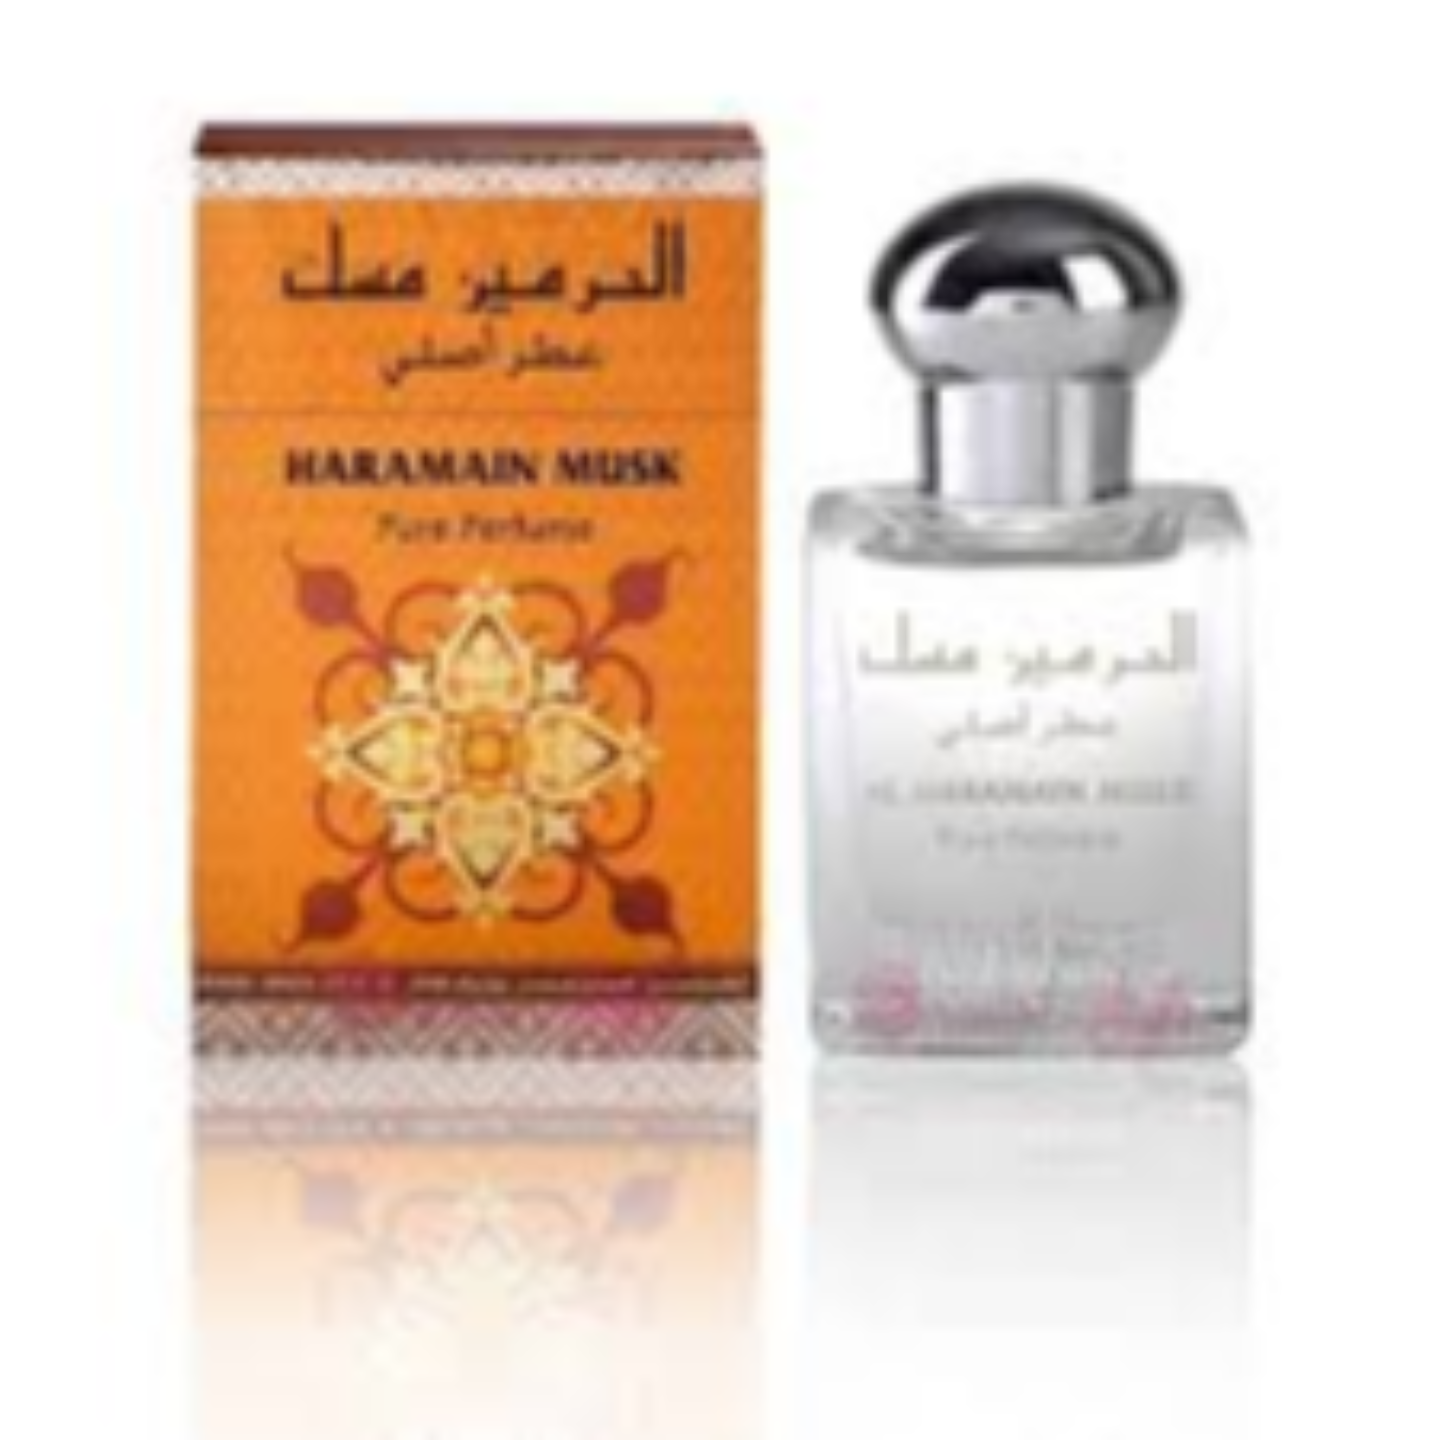 AL HARAMAIN MUSK ATTAR